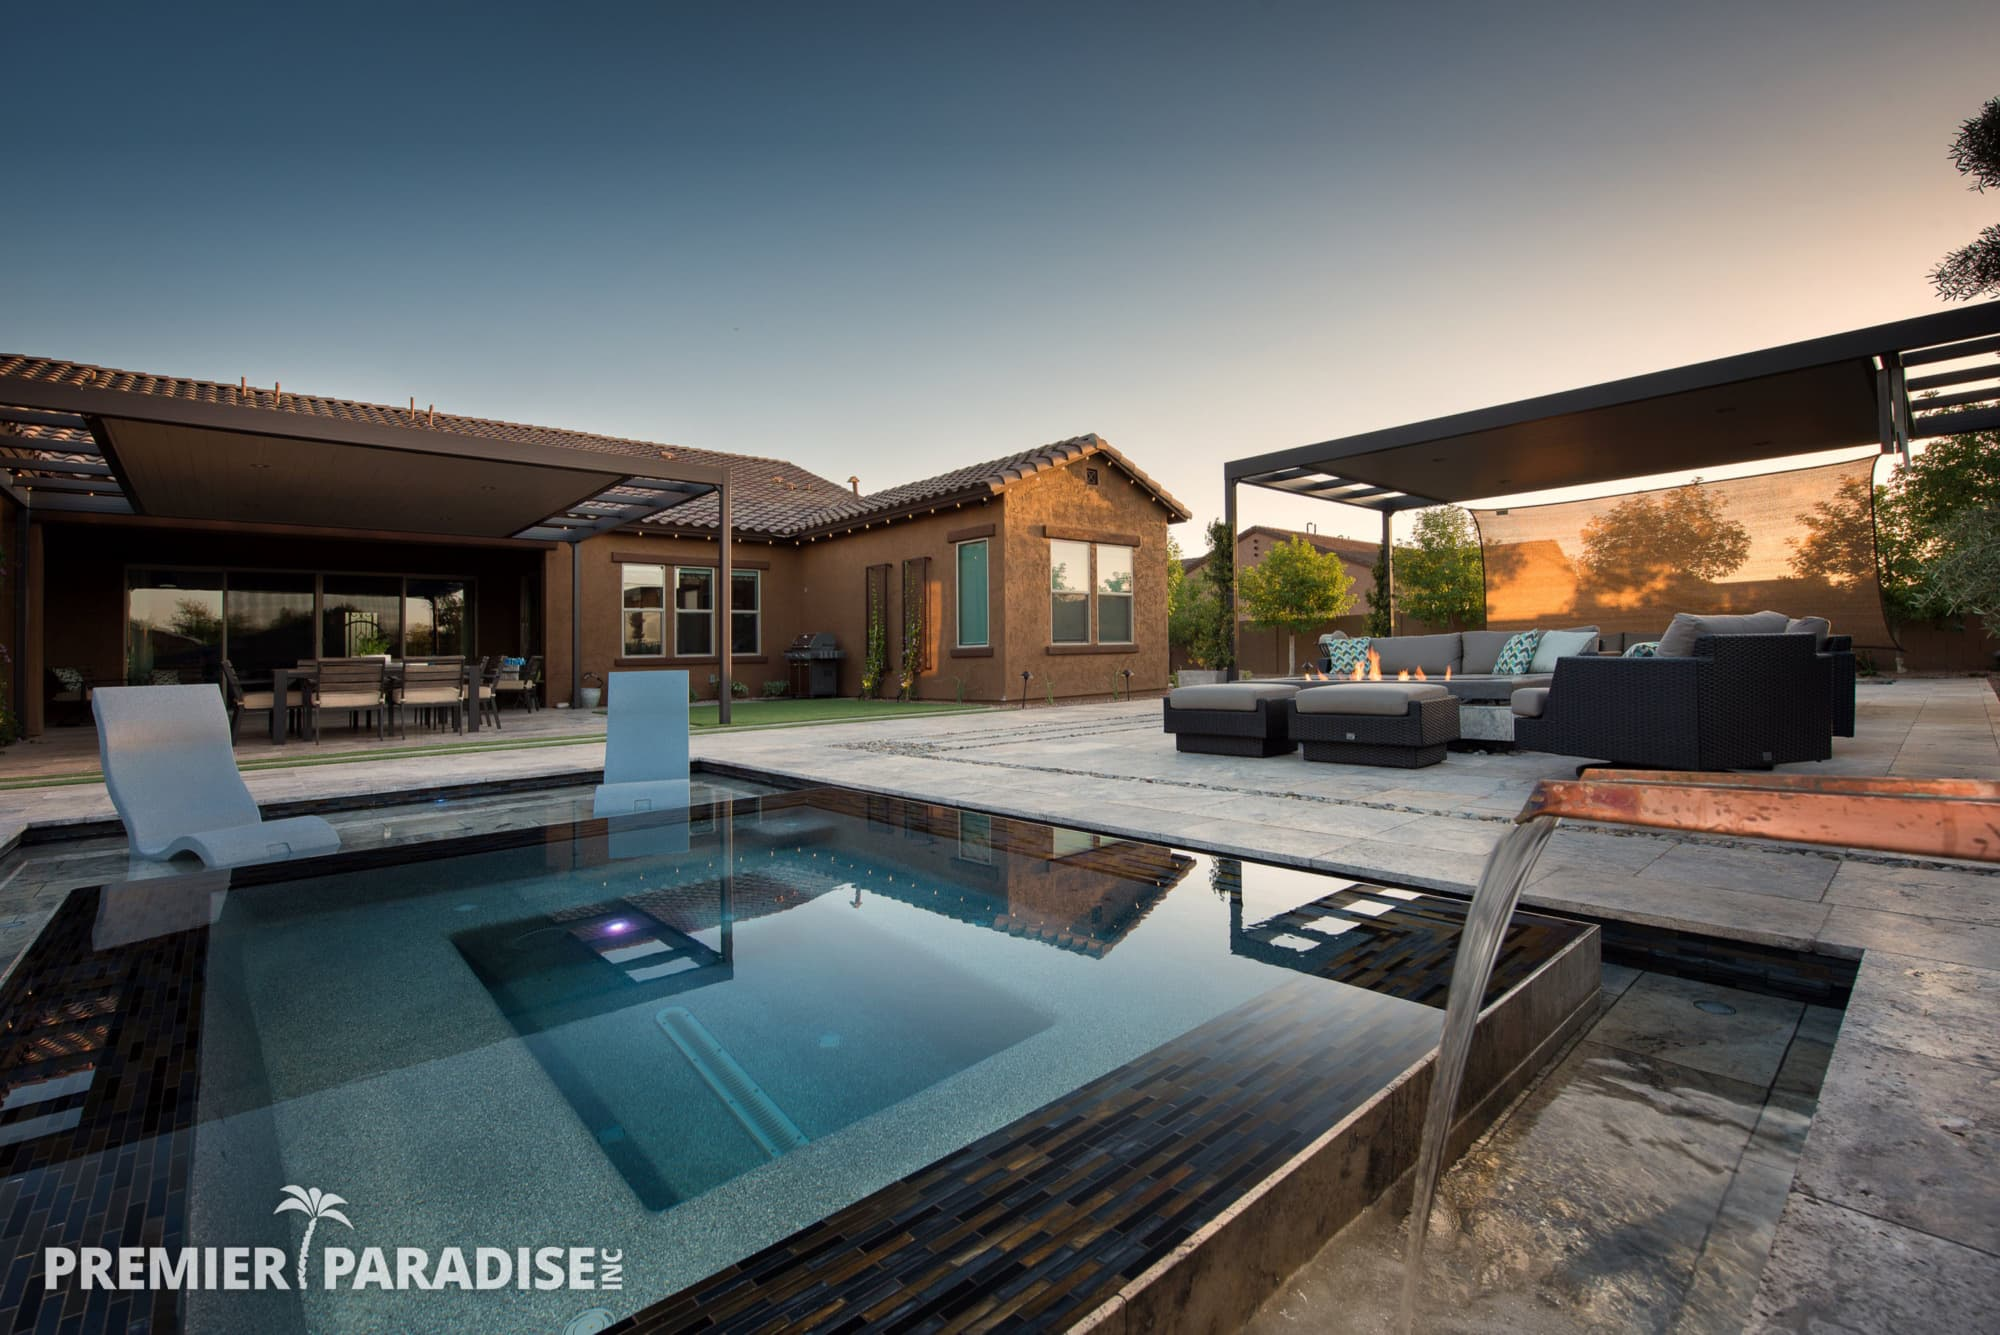 Modern Perimeter Overflow Spa & Luxury Outdoor Living ... on Outdoor Living Spa id=86924